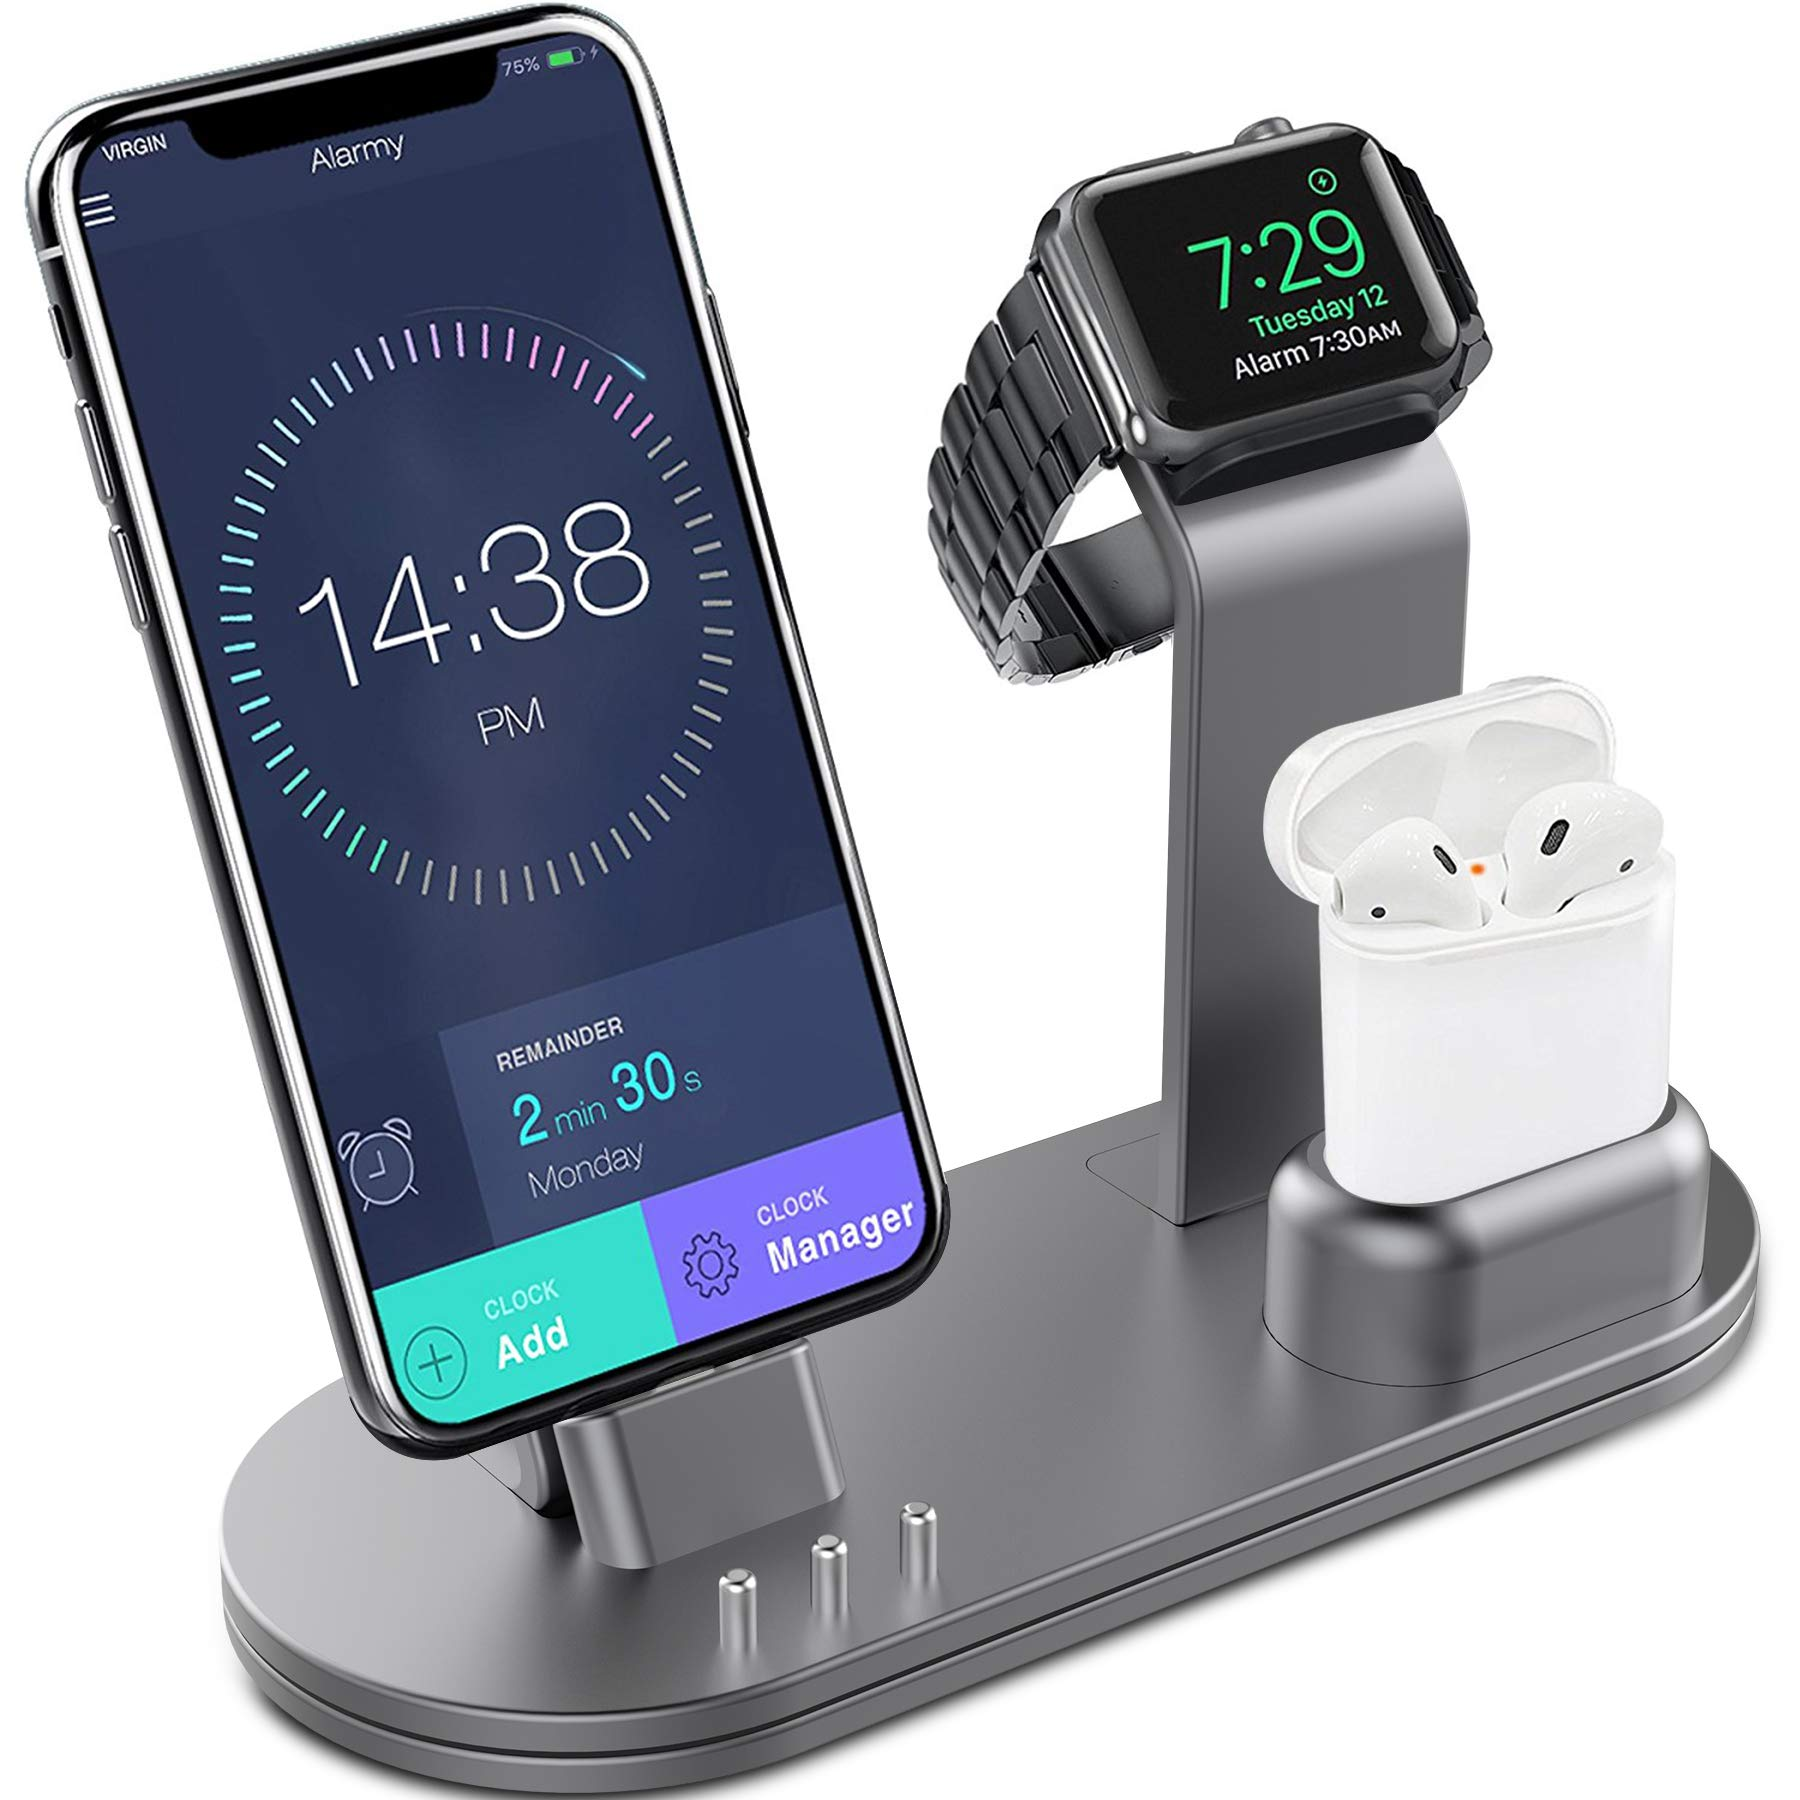 OLEBR Charging Stand Aluminum Alloy Charging Docks Suitable for iWatch Series 4/3/2/1/ AirPods/iPhone Xs/iPhone Xs Max/iPhone XR/X/8/8Plus/7/7 Plus /6S /6S Plus/iPad-Space Gray